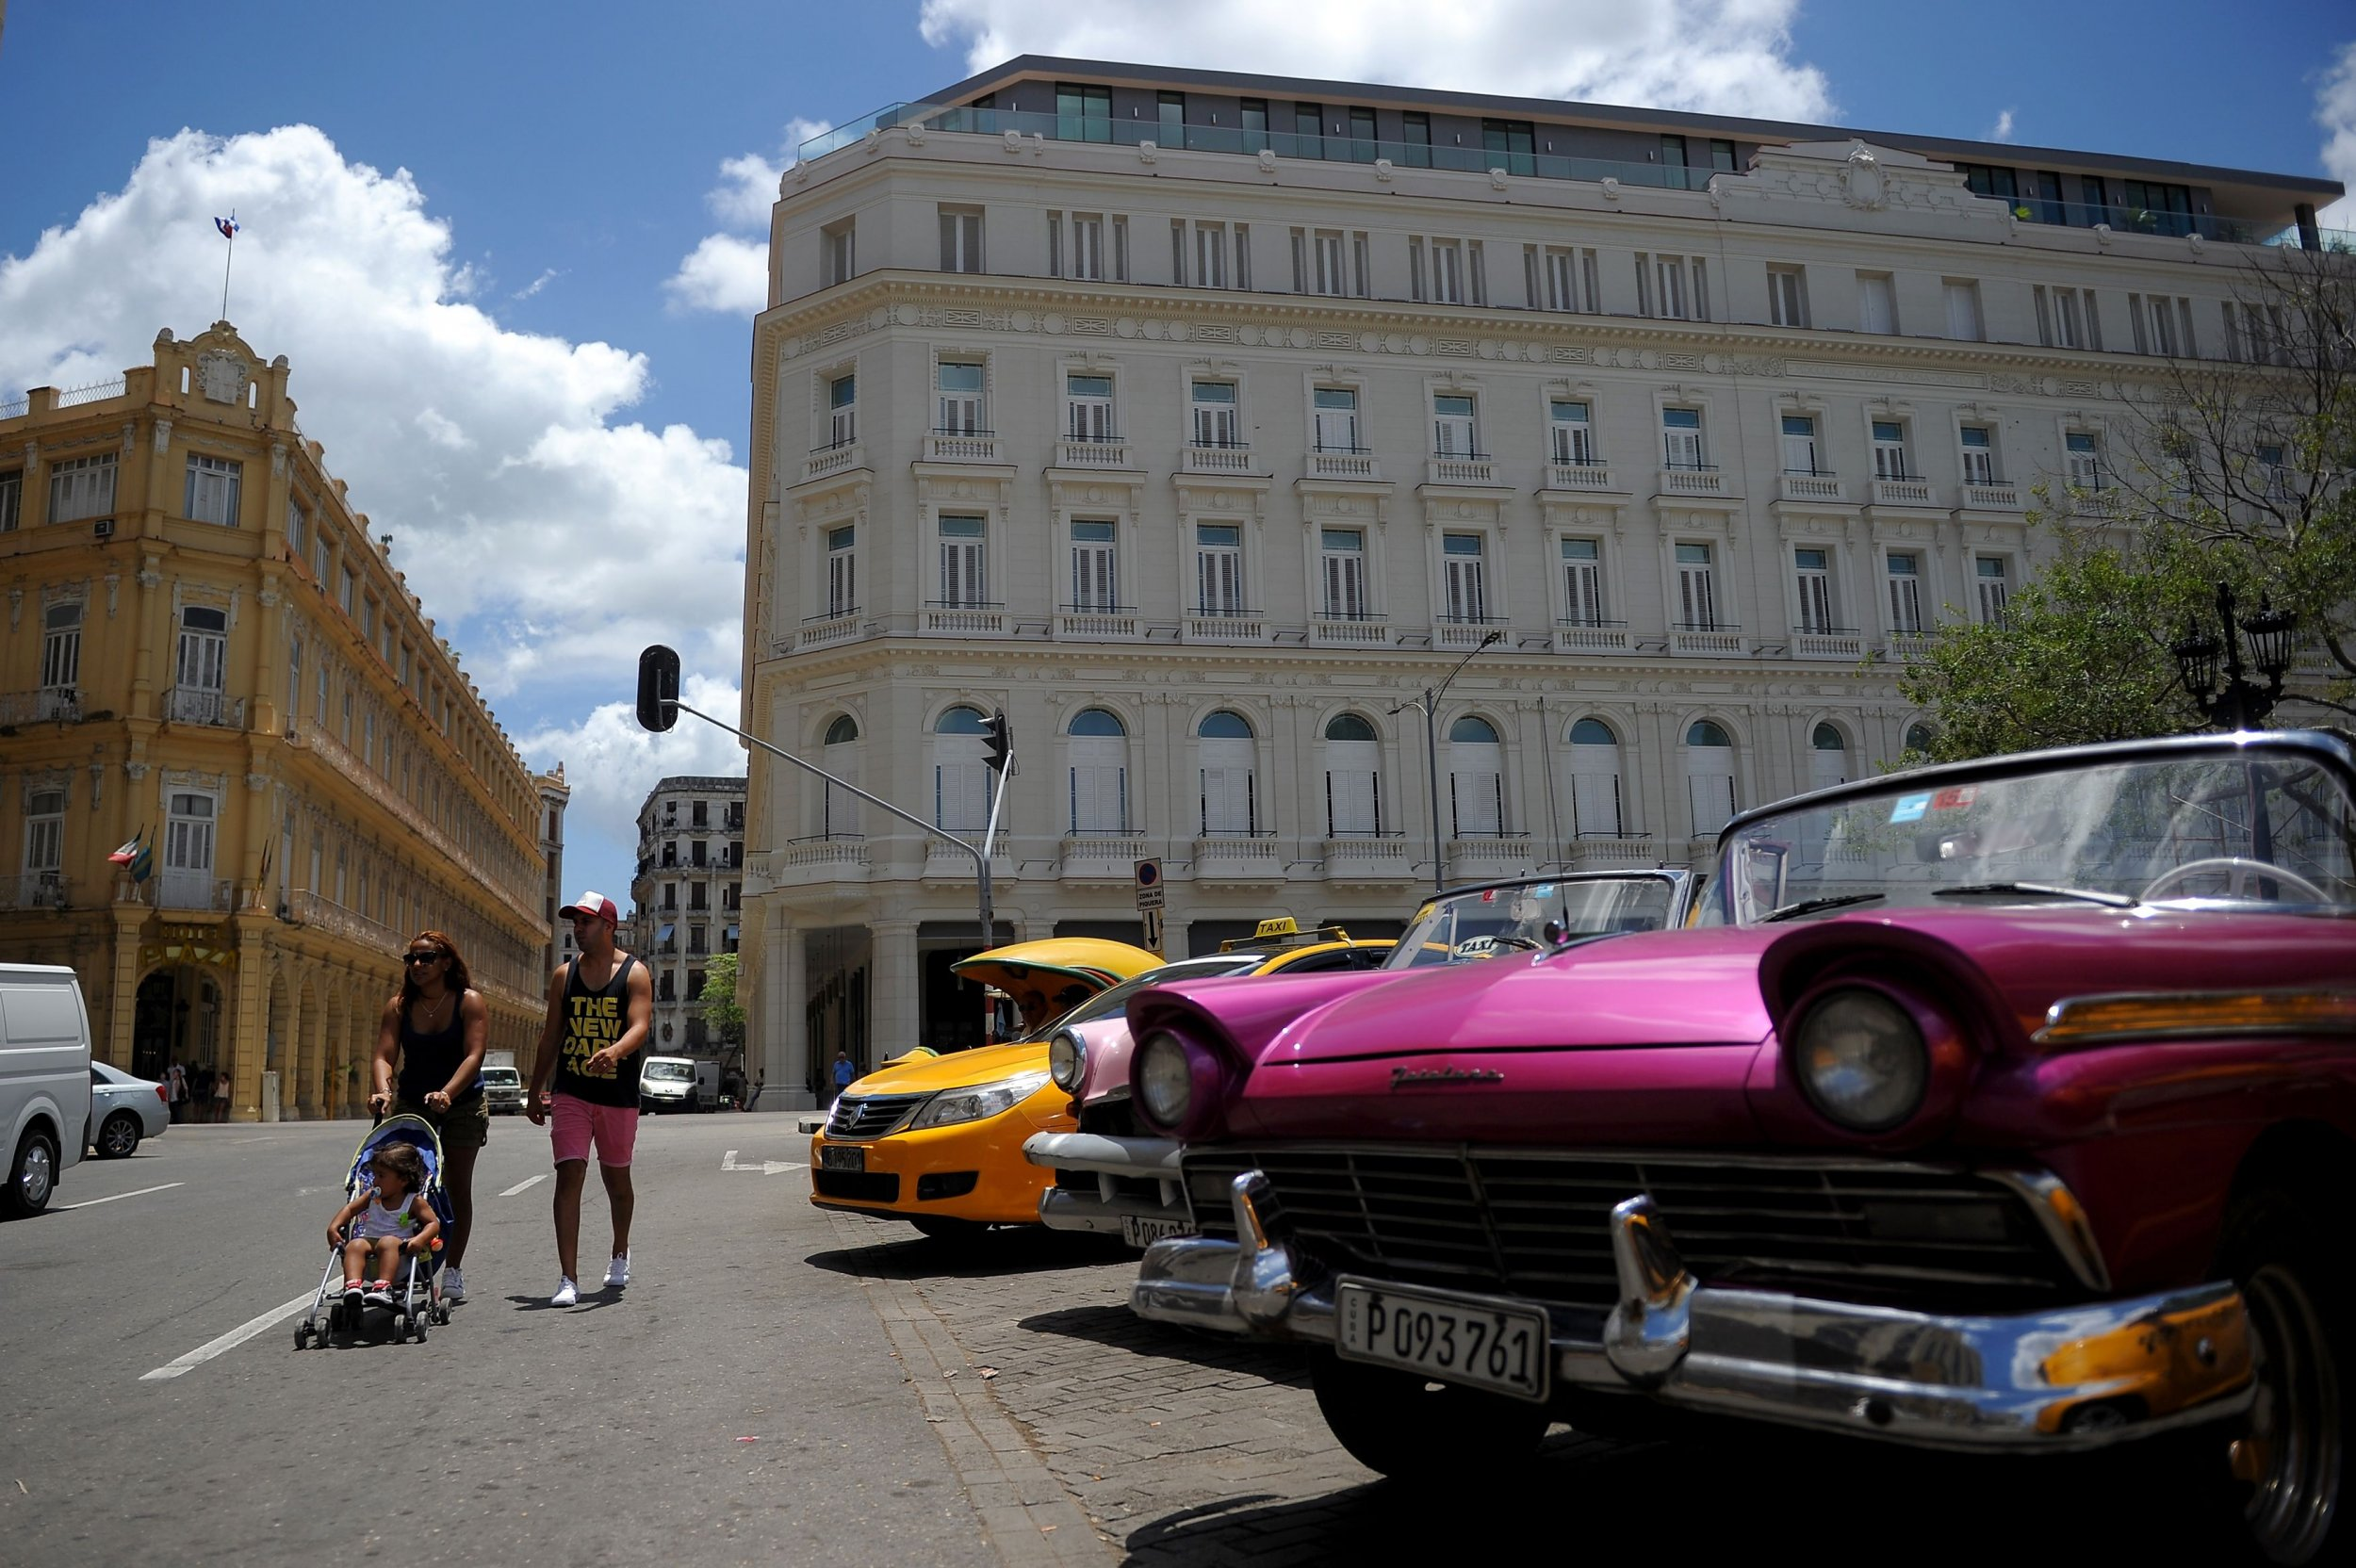 U S Lawmakers Want To End Cuba Travel Restrictions But